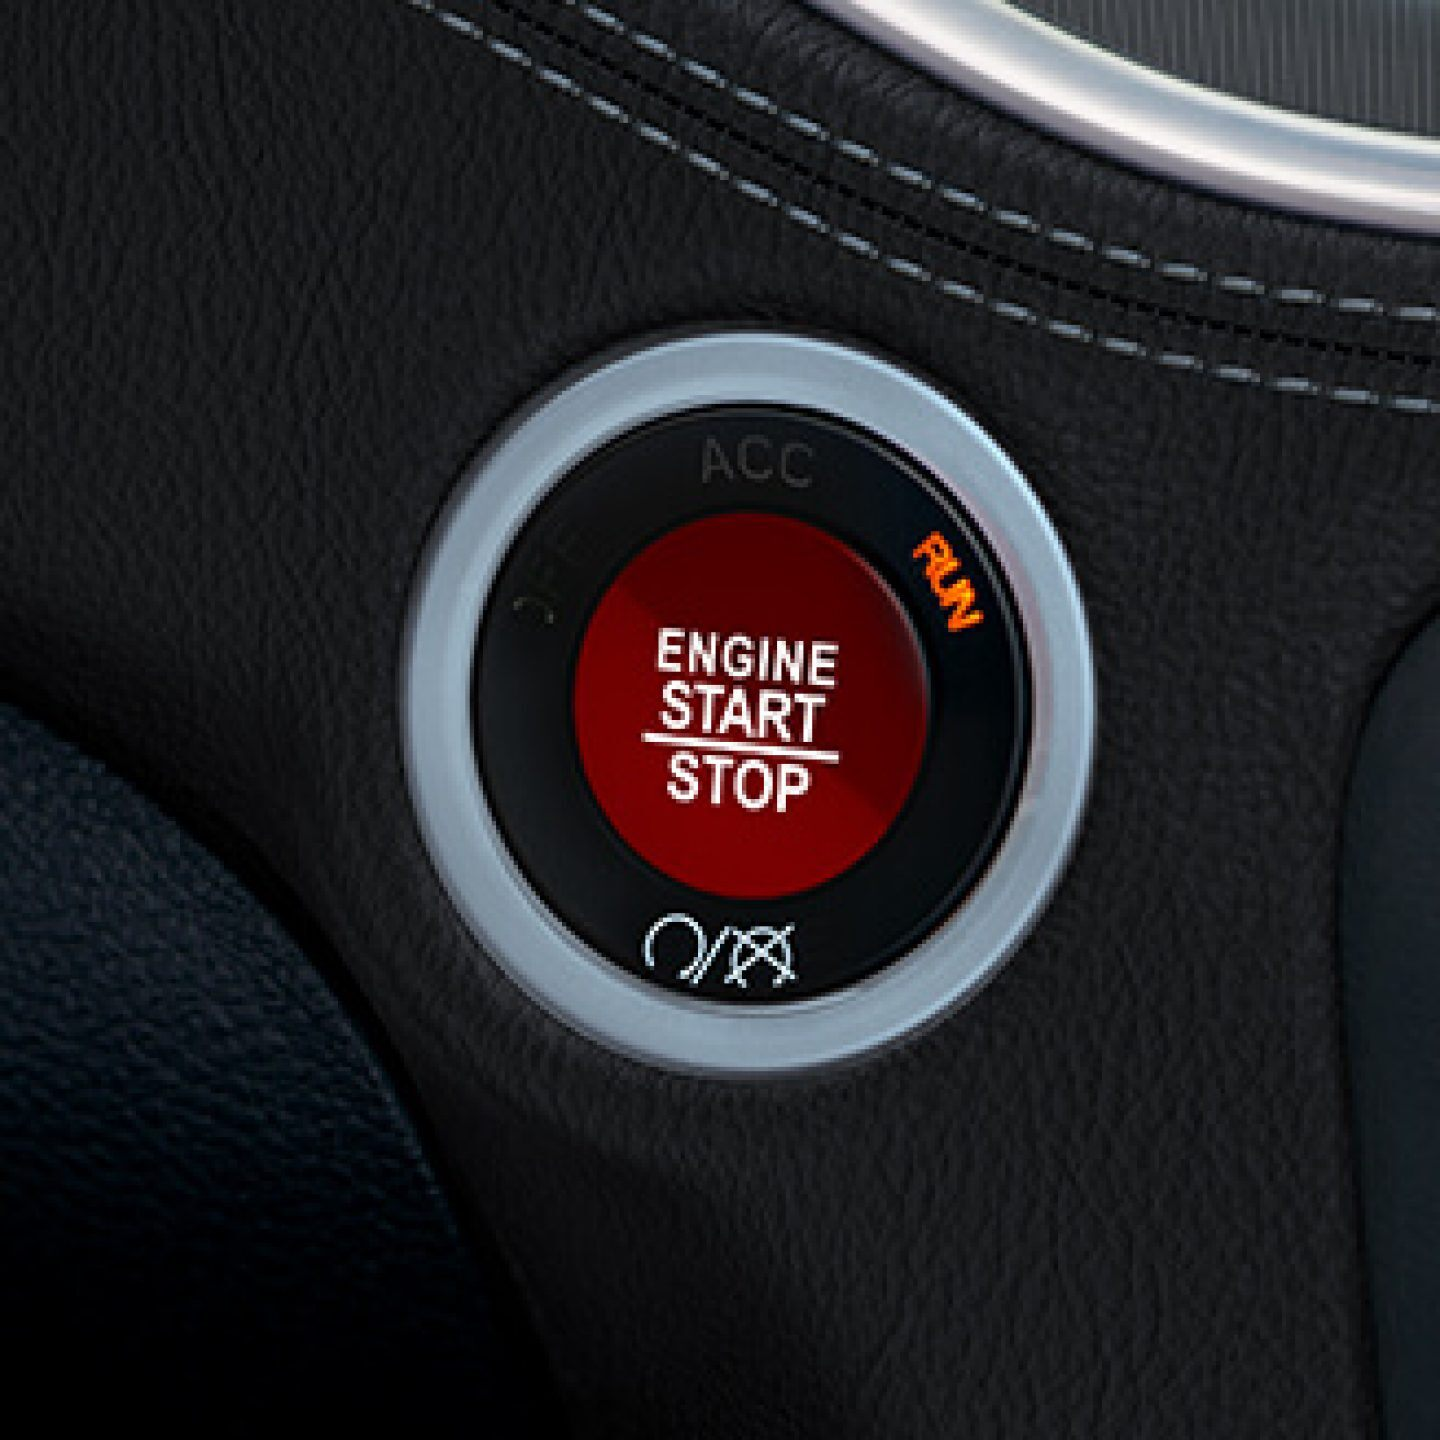 2020-dodge-charger-interior-push-button.jpg.image.1440